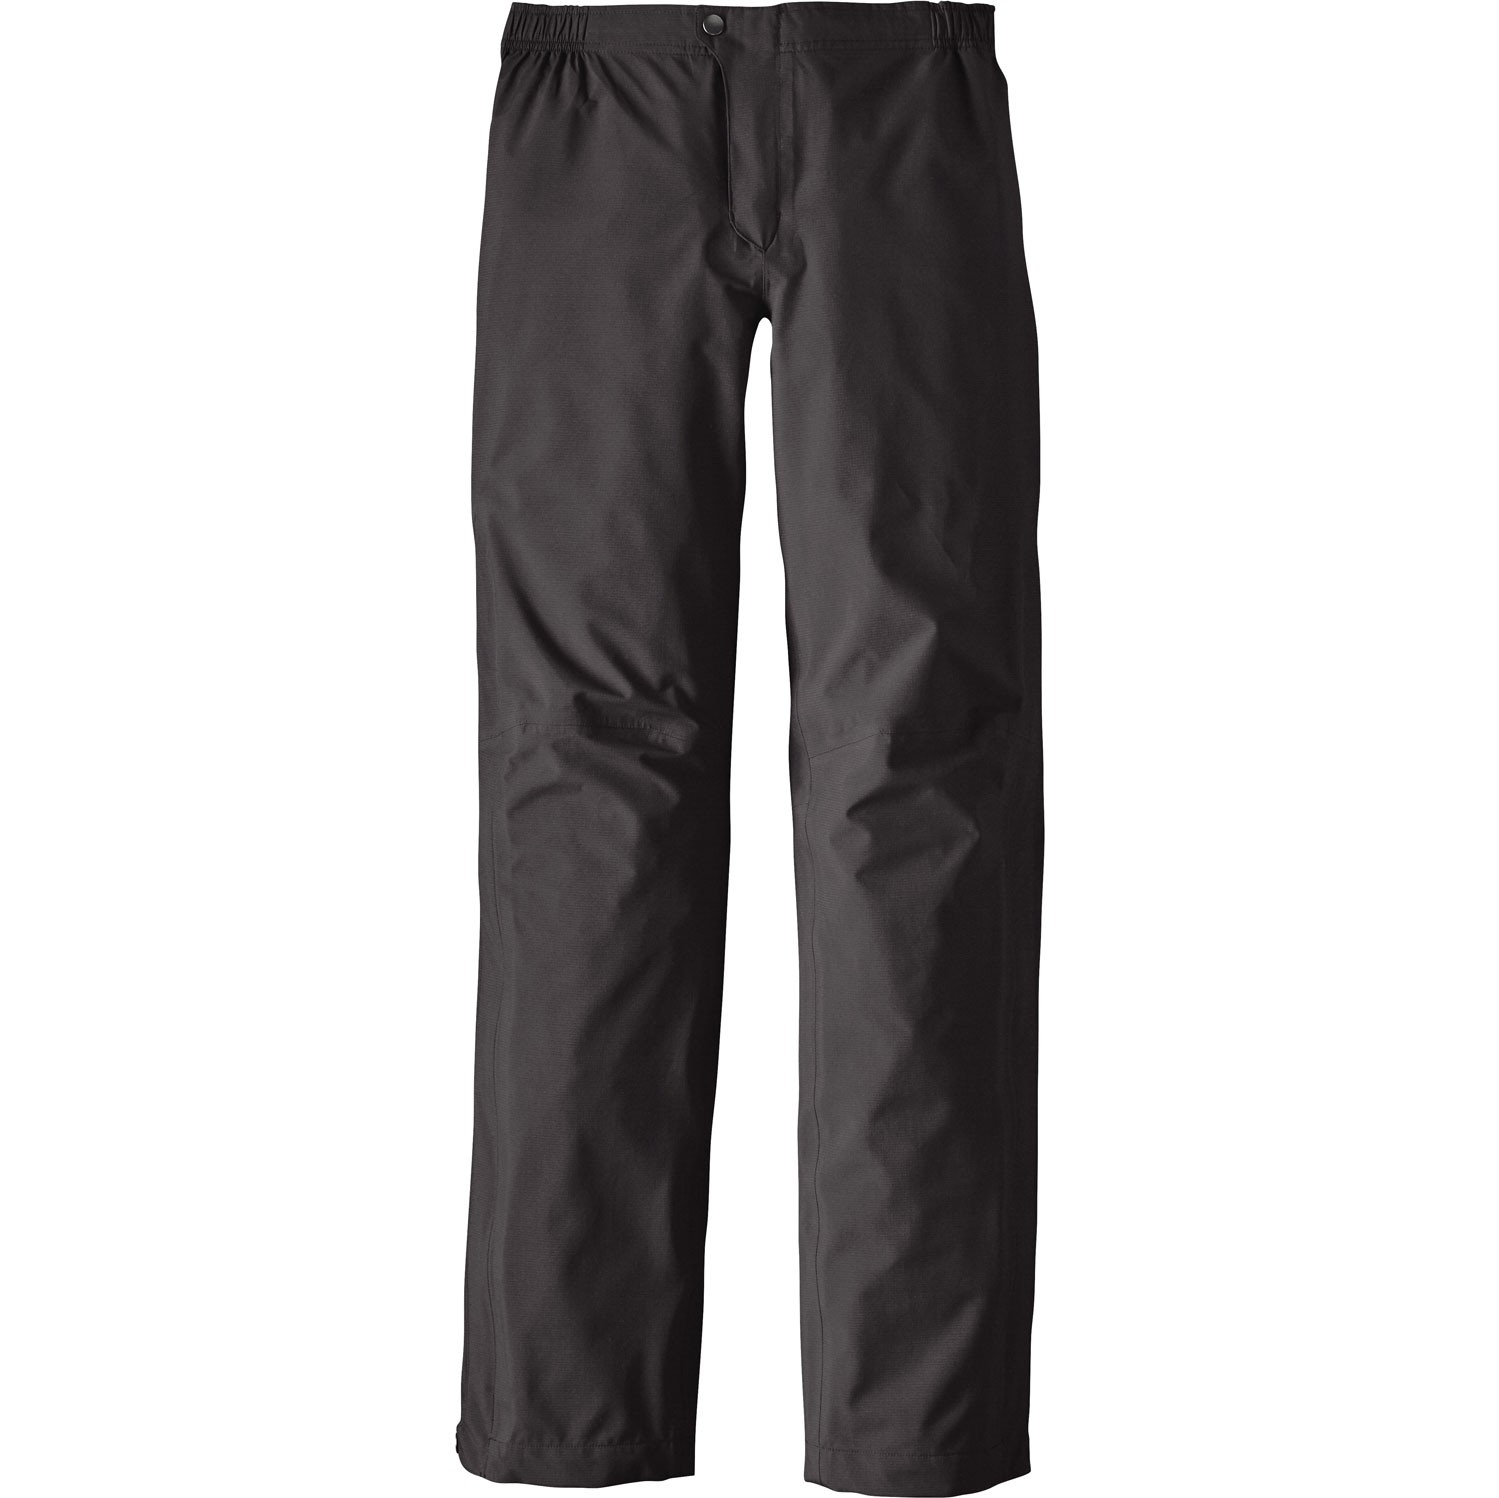 Patagonia Cloud Ridge Women's Waterproof Pants - Black